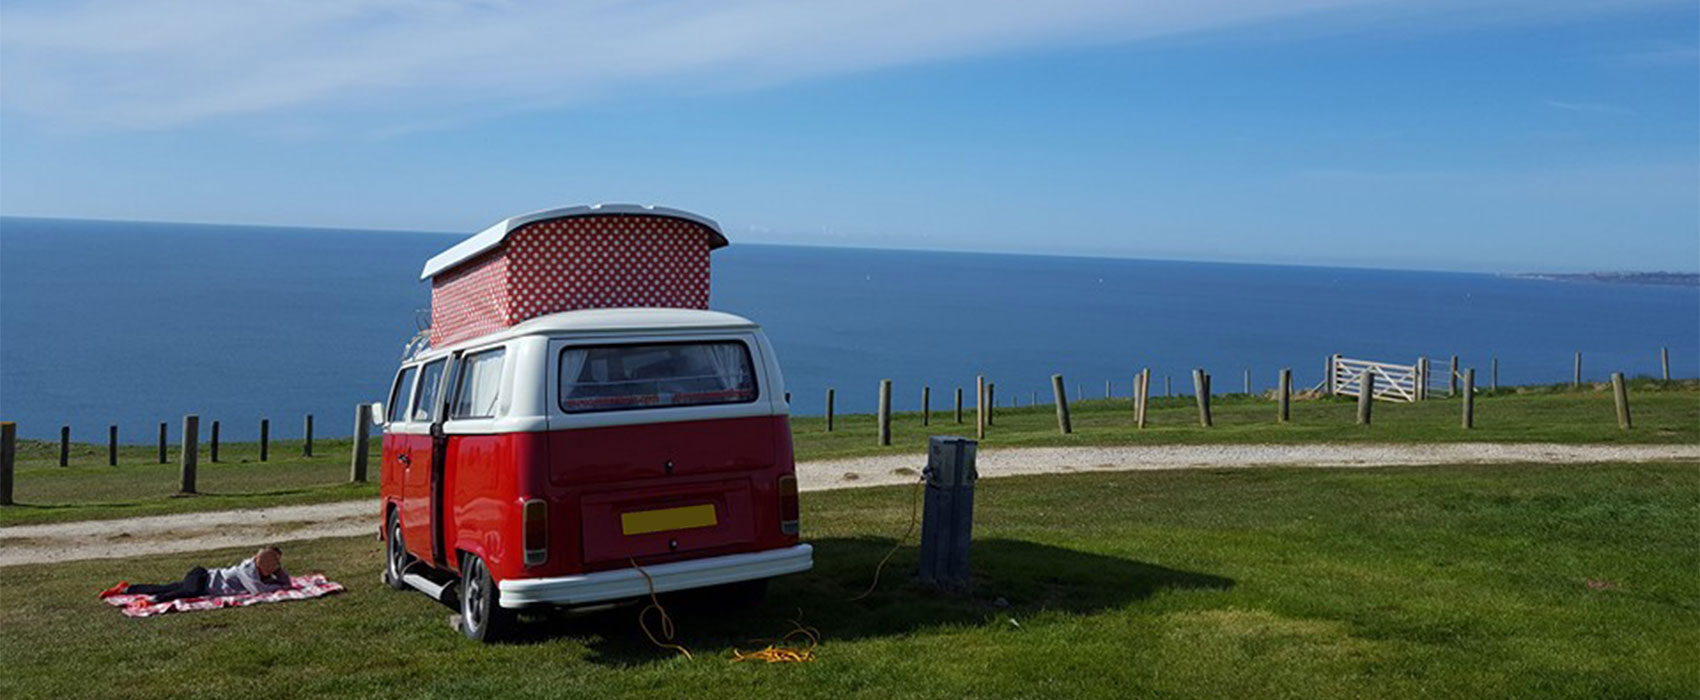 Weekend campervan hire